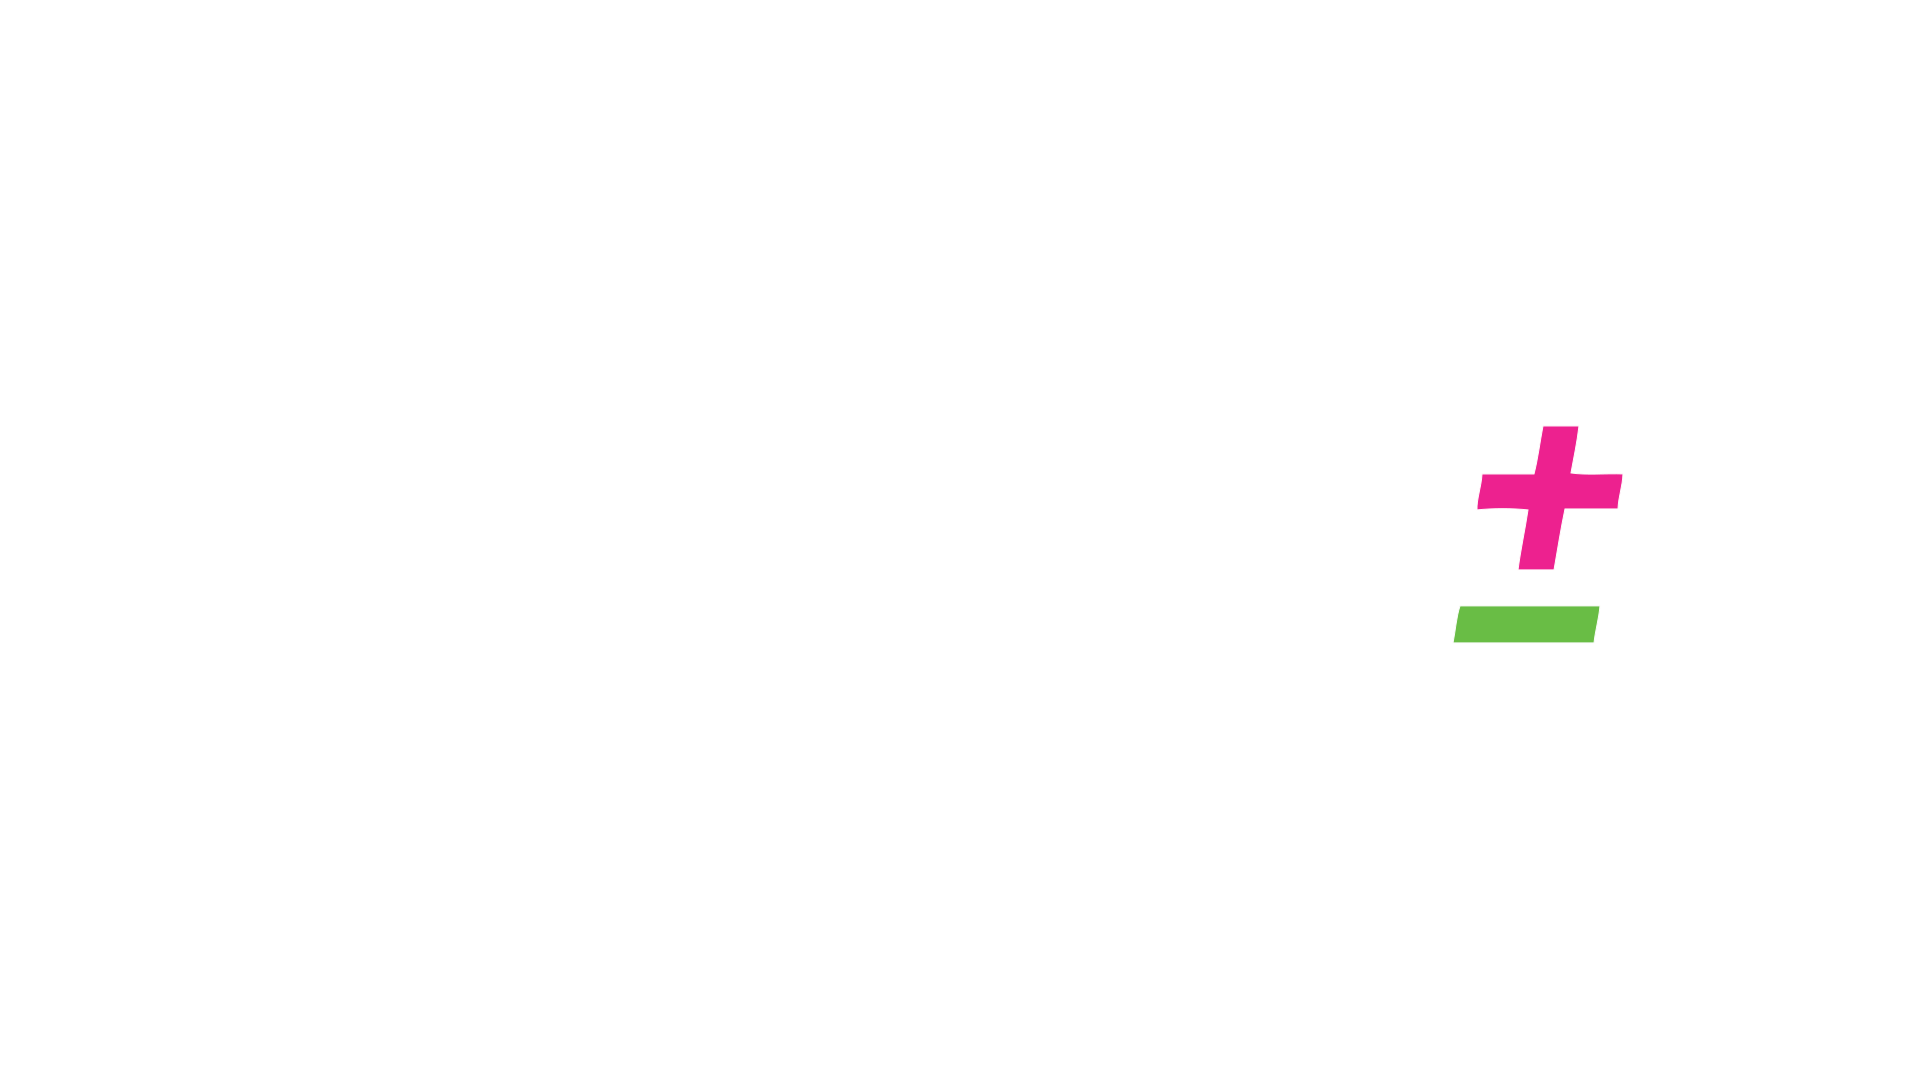 We're team 696